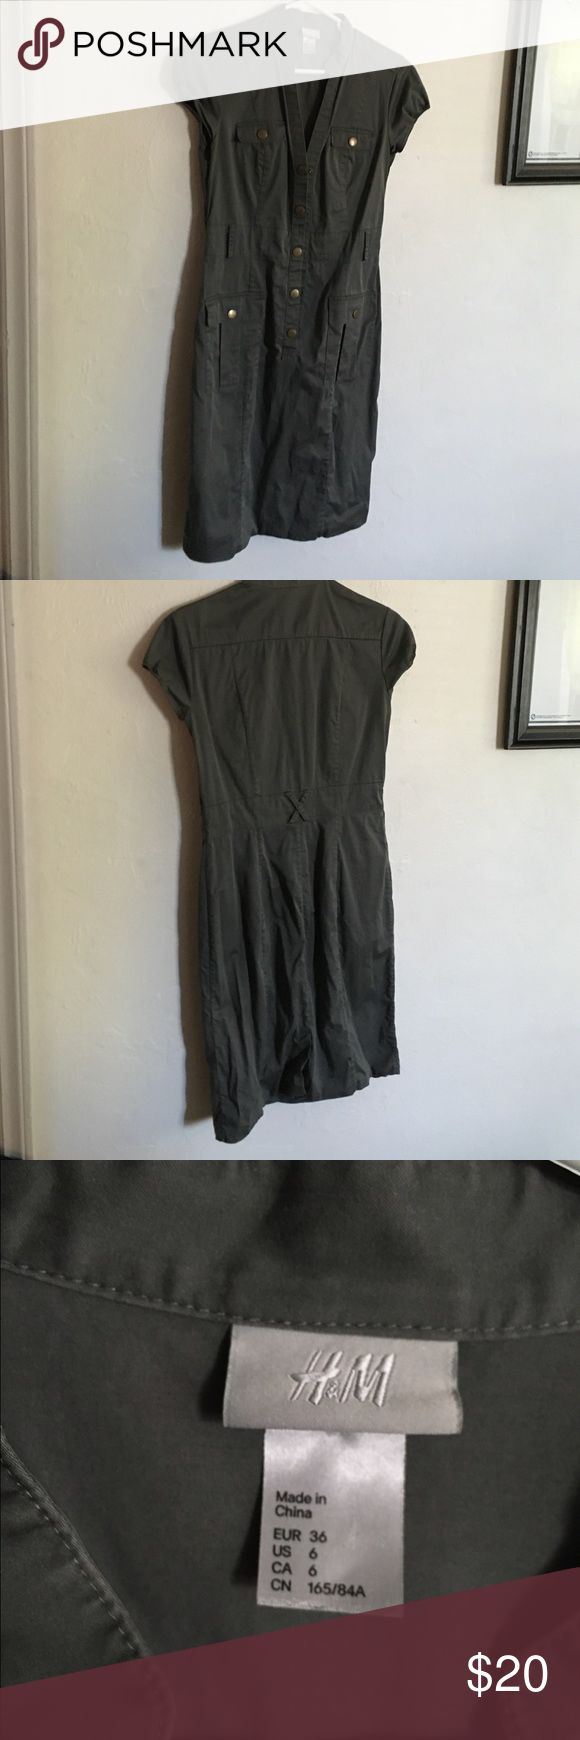 H&M military dress Army green military dress. Form fitting. Stretchy fabric. Do not have the belt. Great condition. H&M Dresses